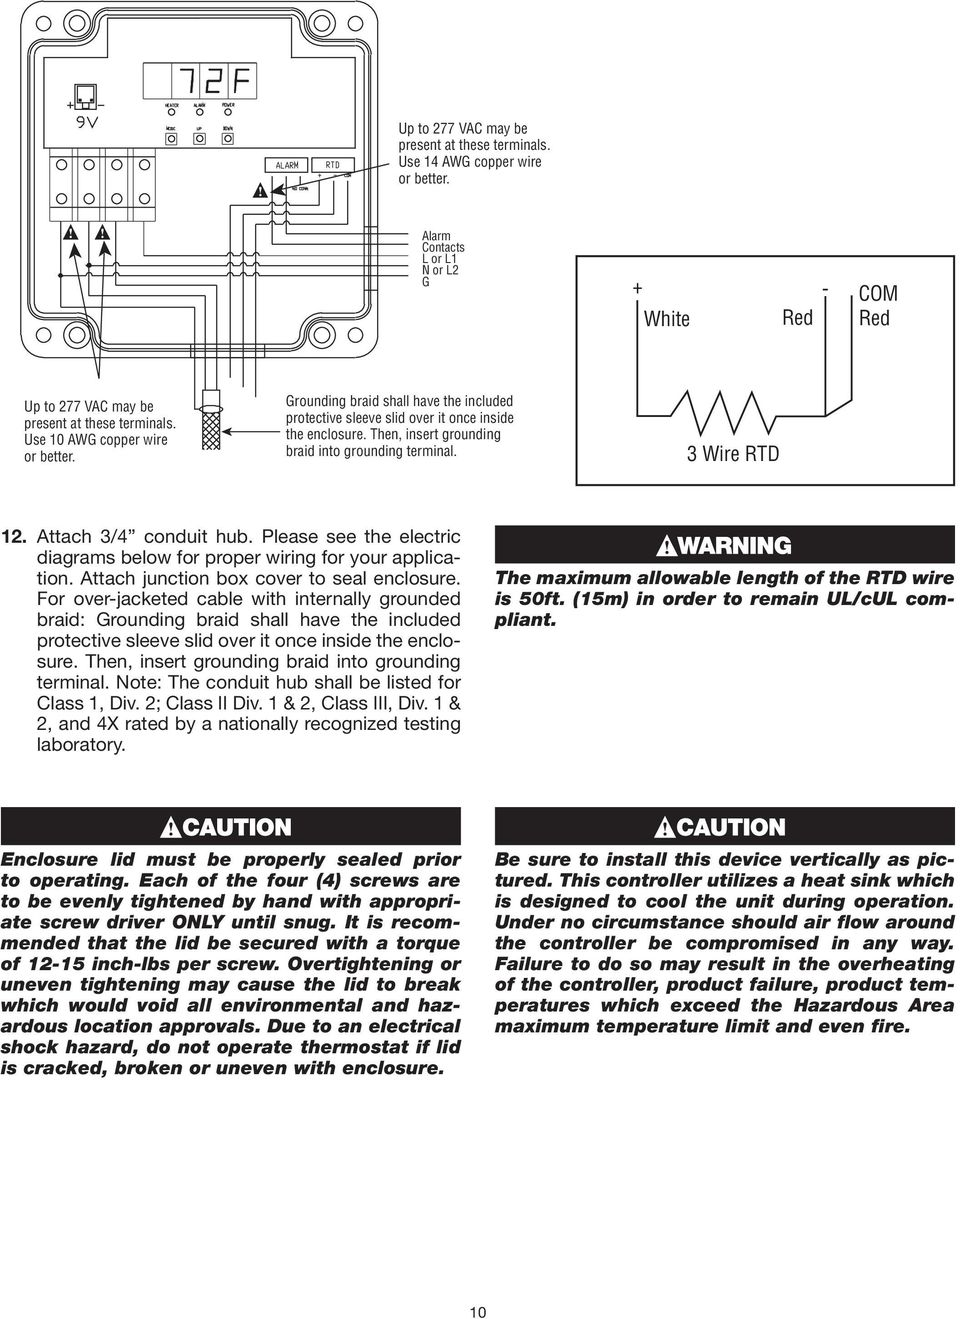 Installation Instructions Dts Haz Dc For Use With Self Wiring Diagrams Are Attached Inside The Electrical Box Cover Attach 3 4 Conduit Hub Please See Electric Below Proper